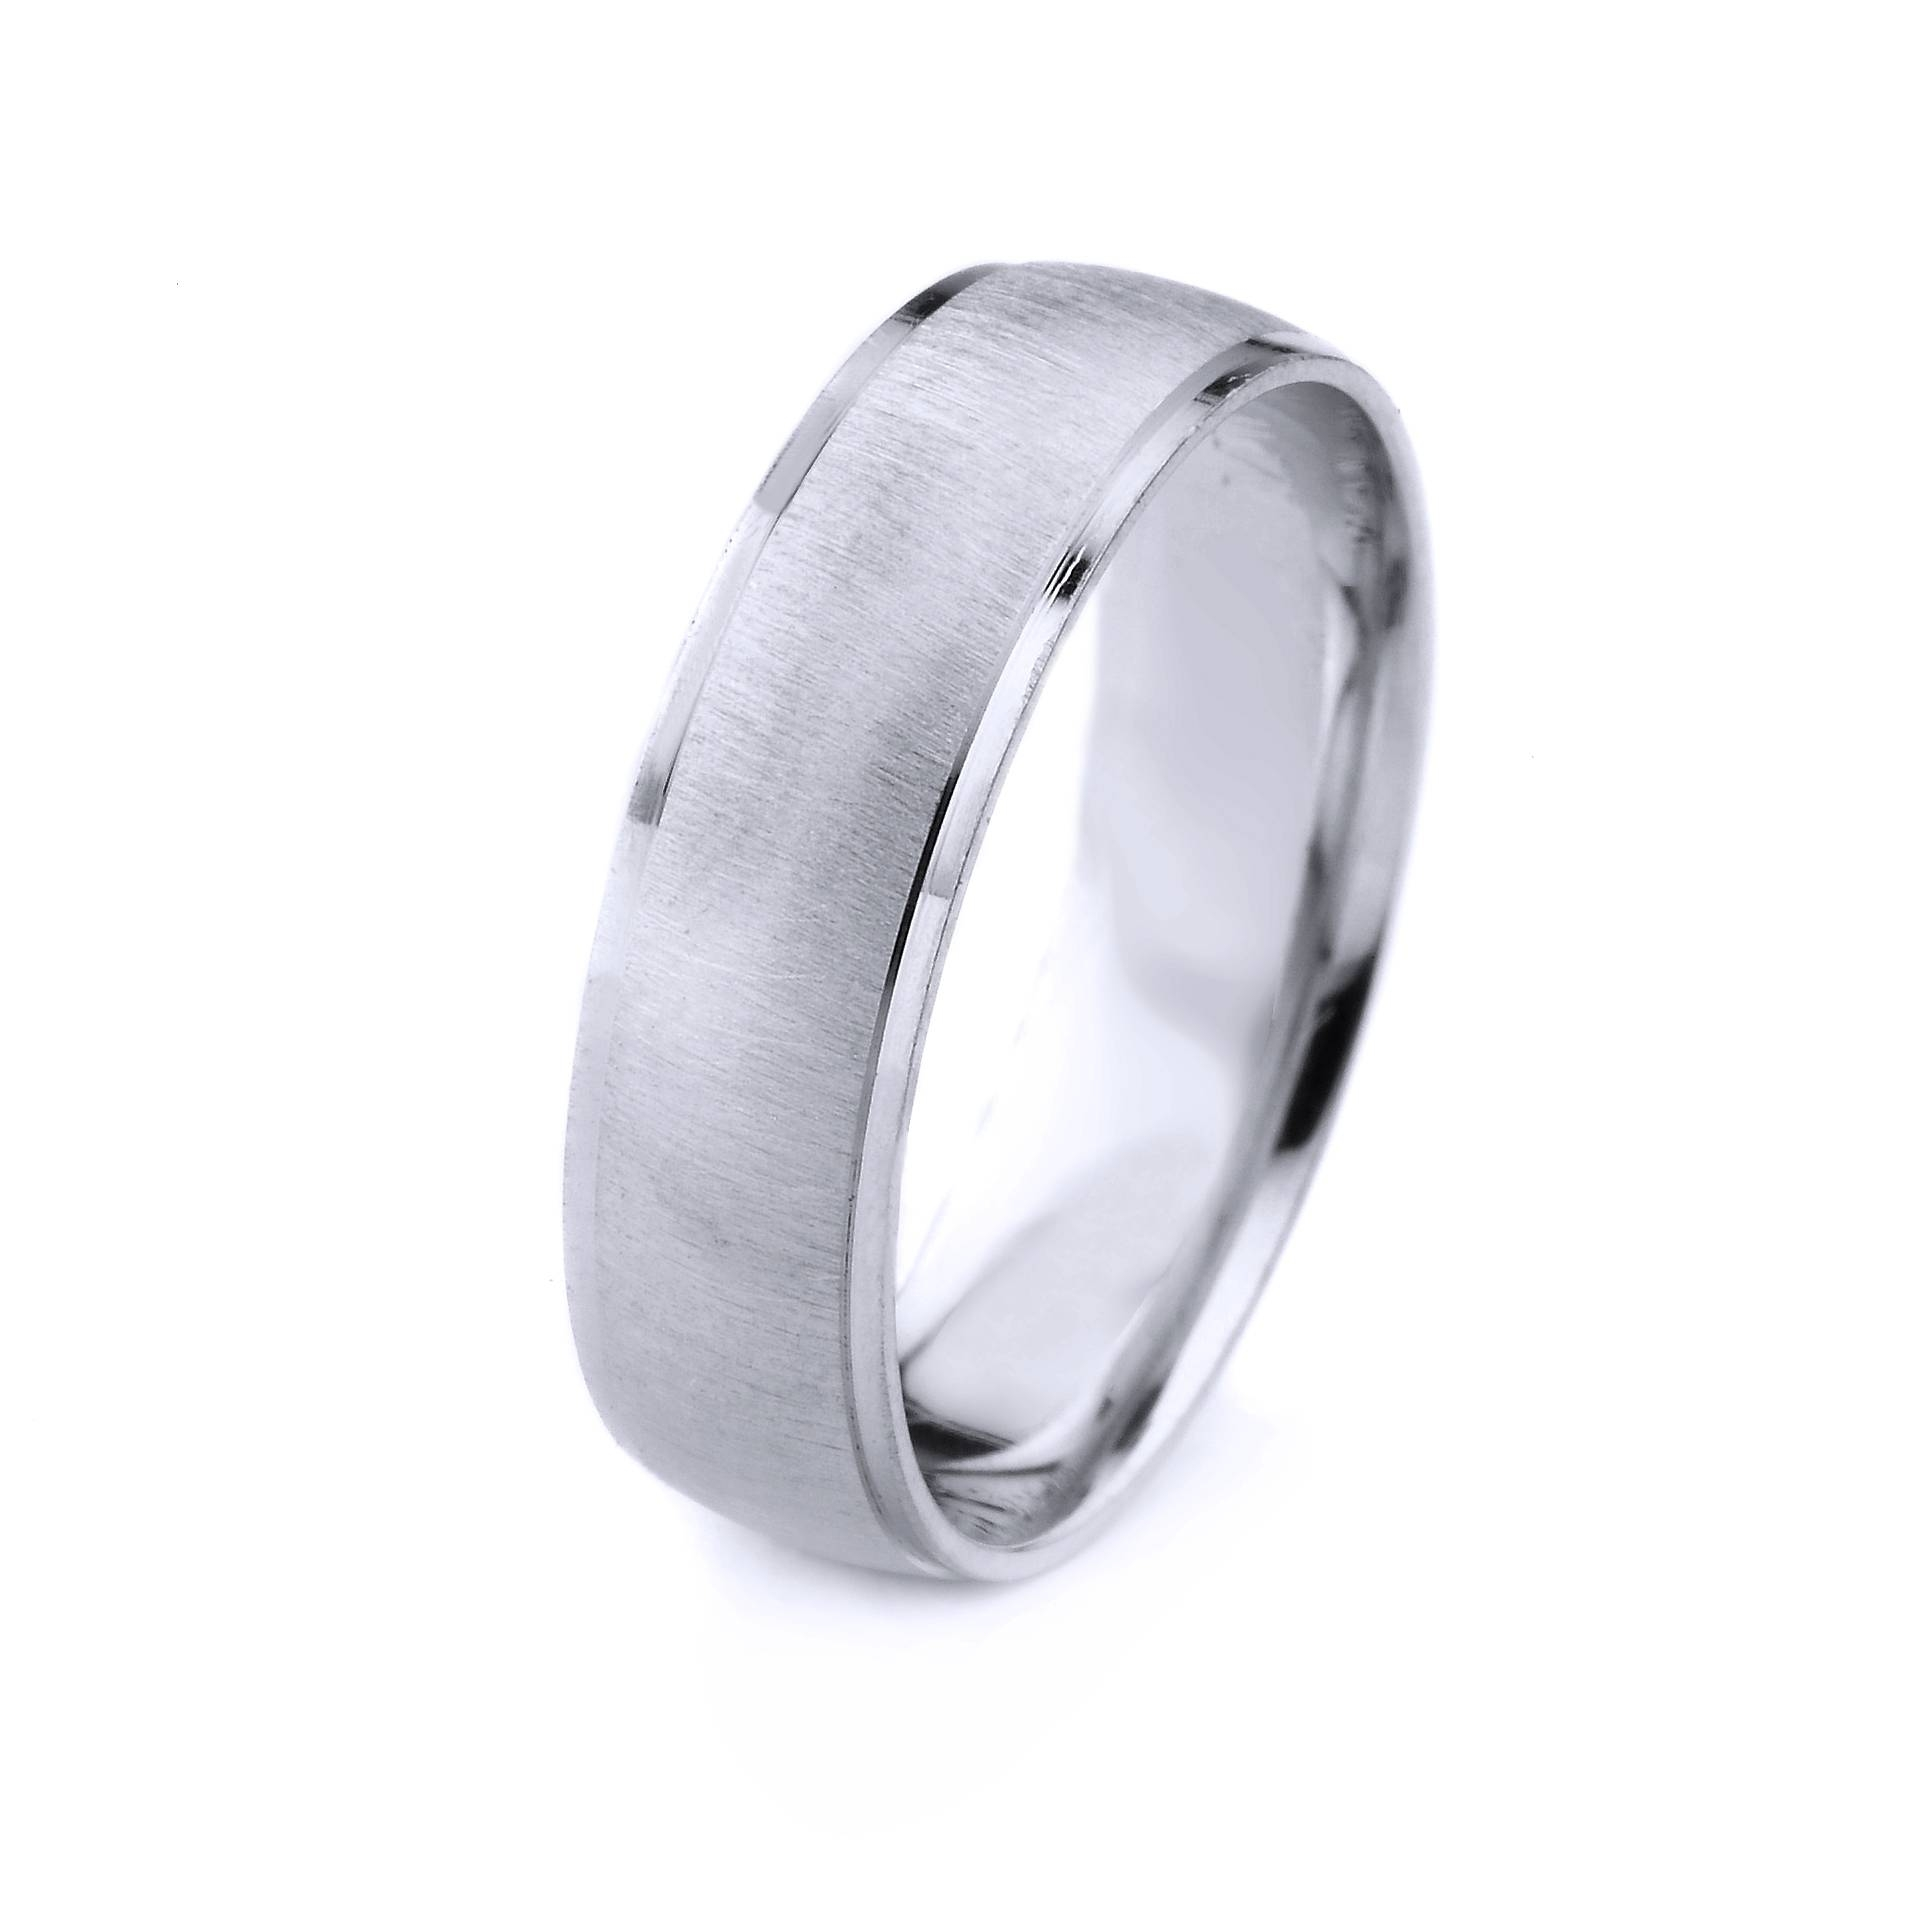 Platinum Mens Wedding Band With Cross Satin Finish And Cut With Regard To Men's Wedding Bands With Crosses (View 12 of 15)